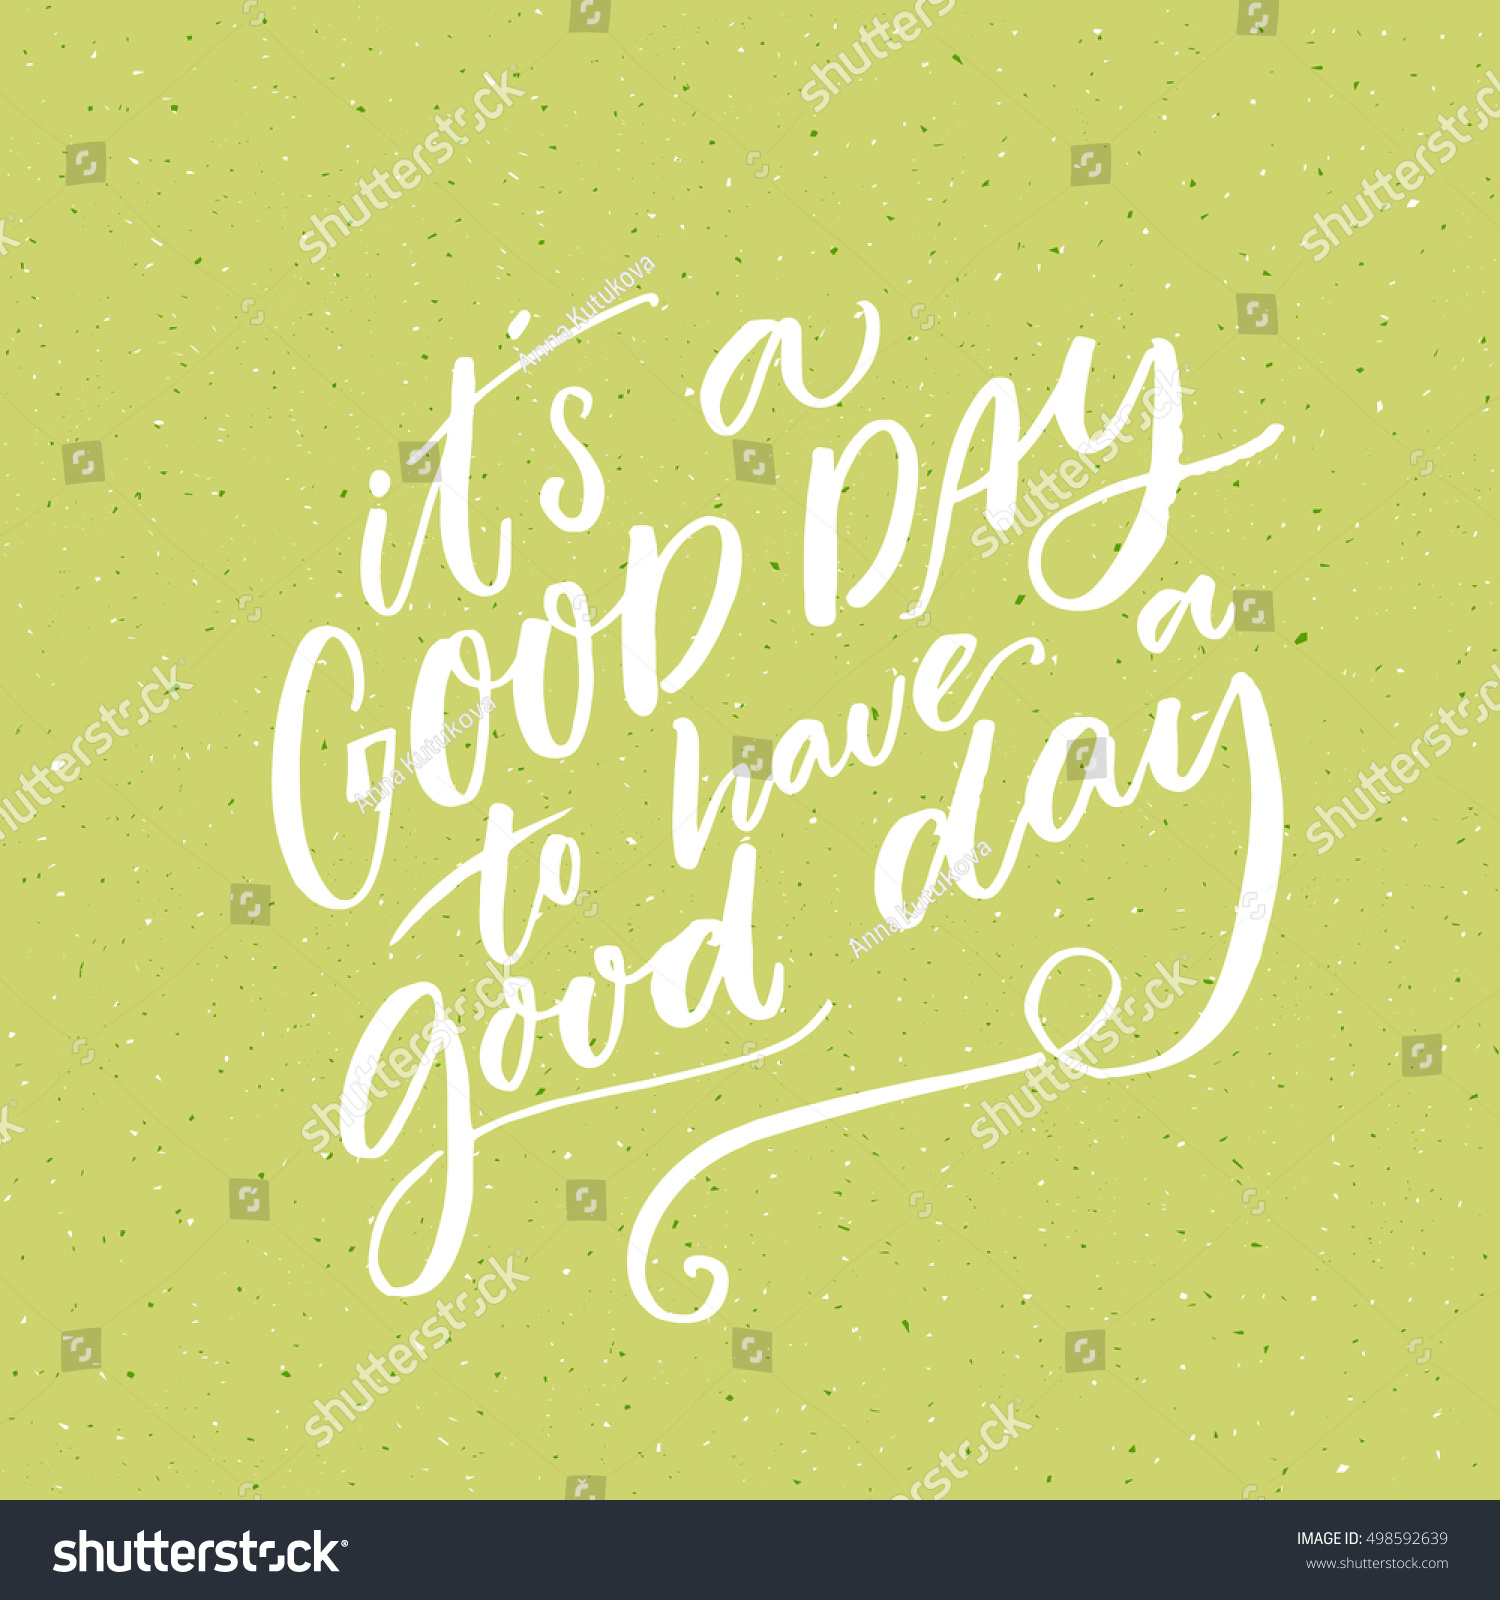 Inspirational Day Quotes: Good Day Have Good Day Inspirational Stock Vector